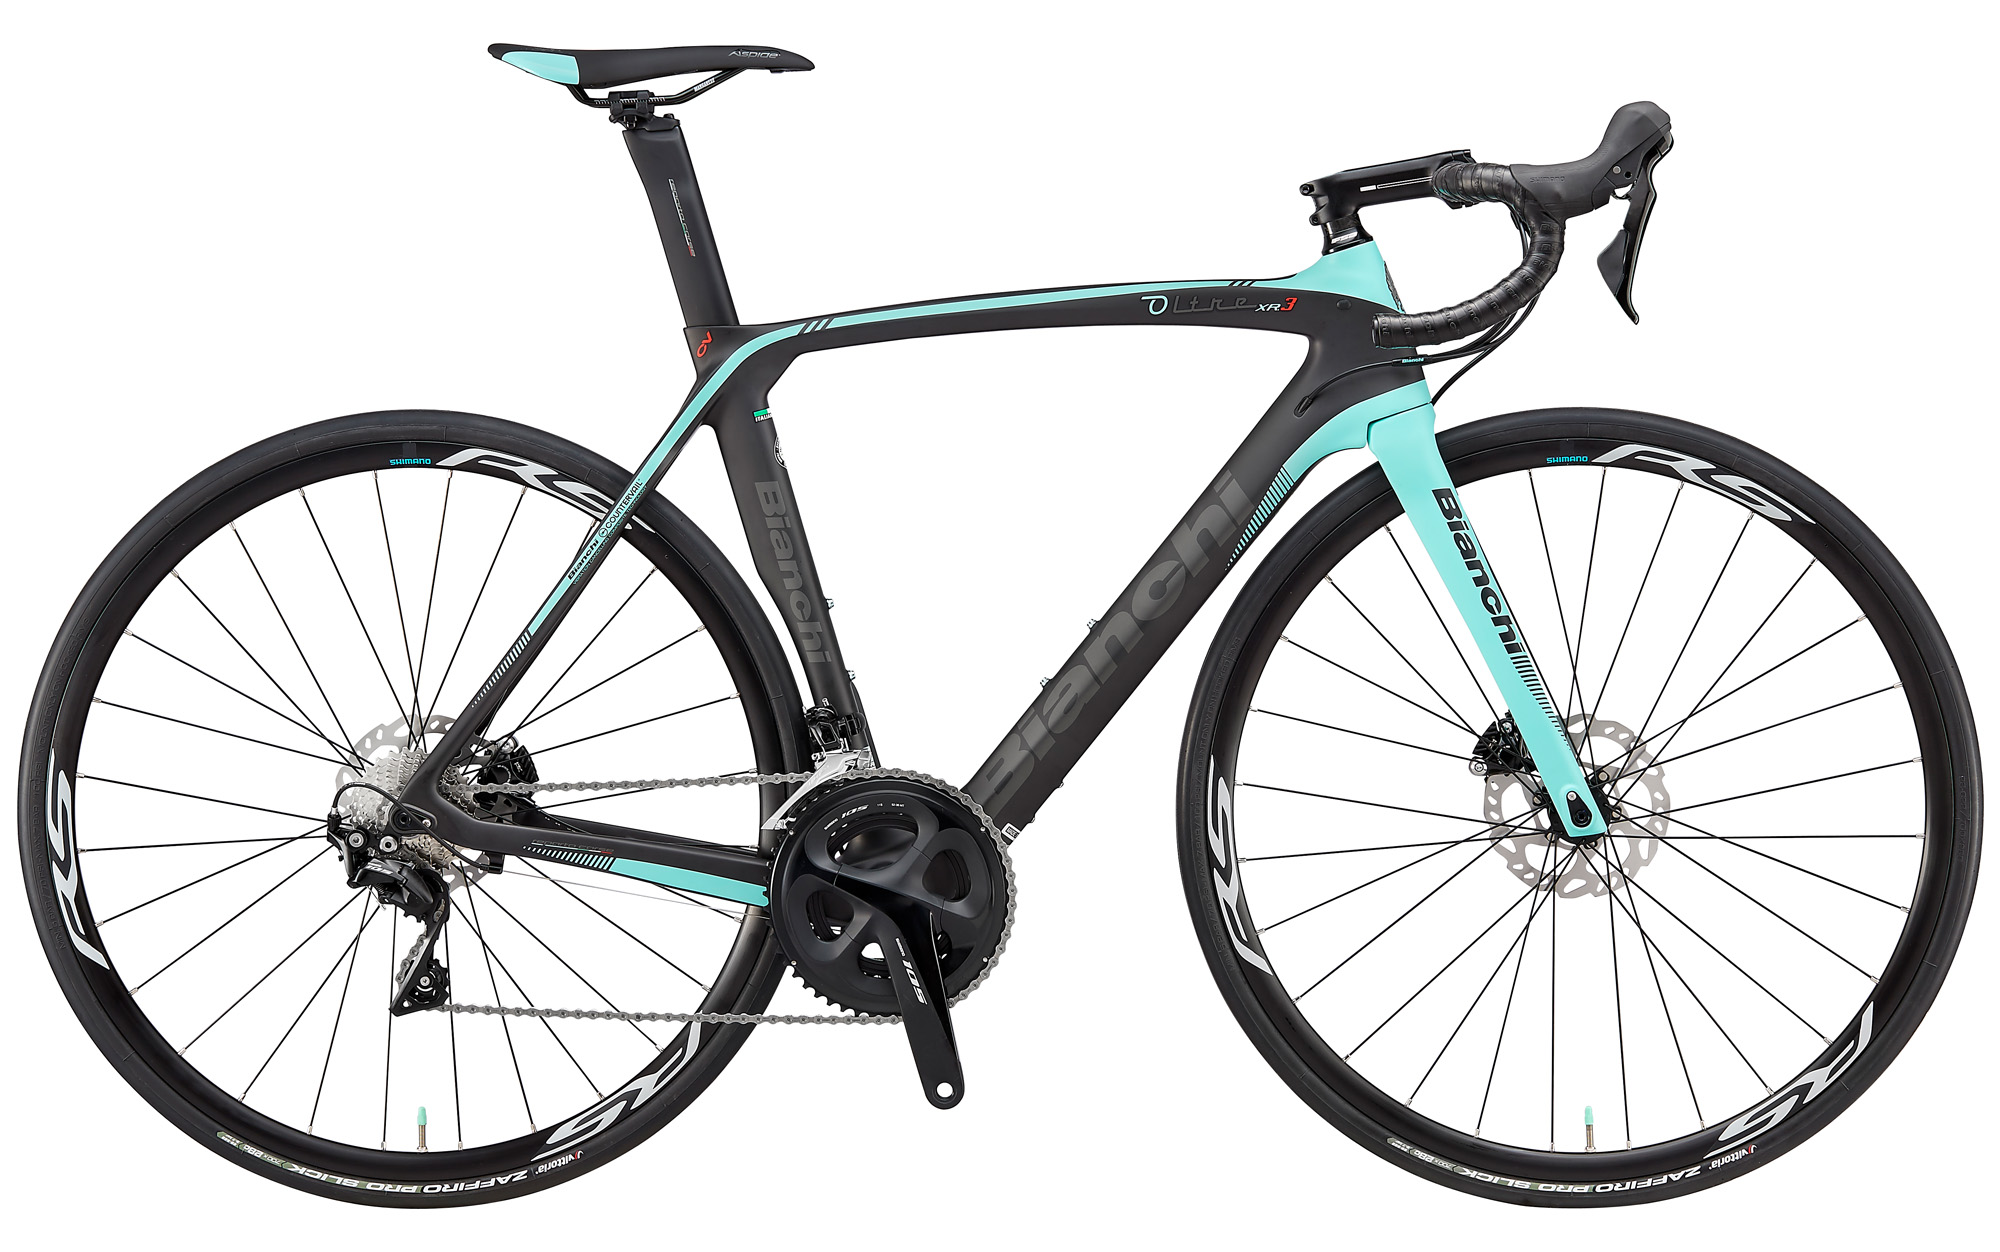 2019-Oltre-XR3-Disc-105-Matt-Black-CK16